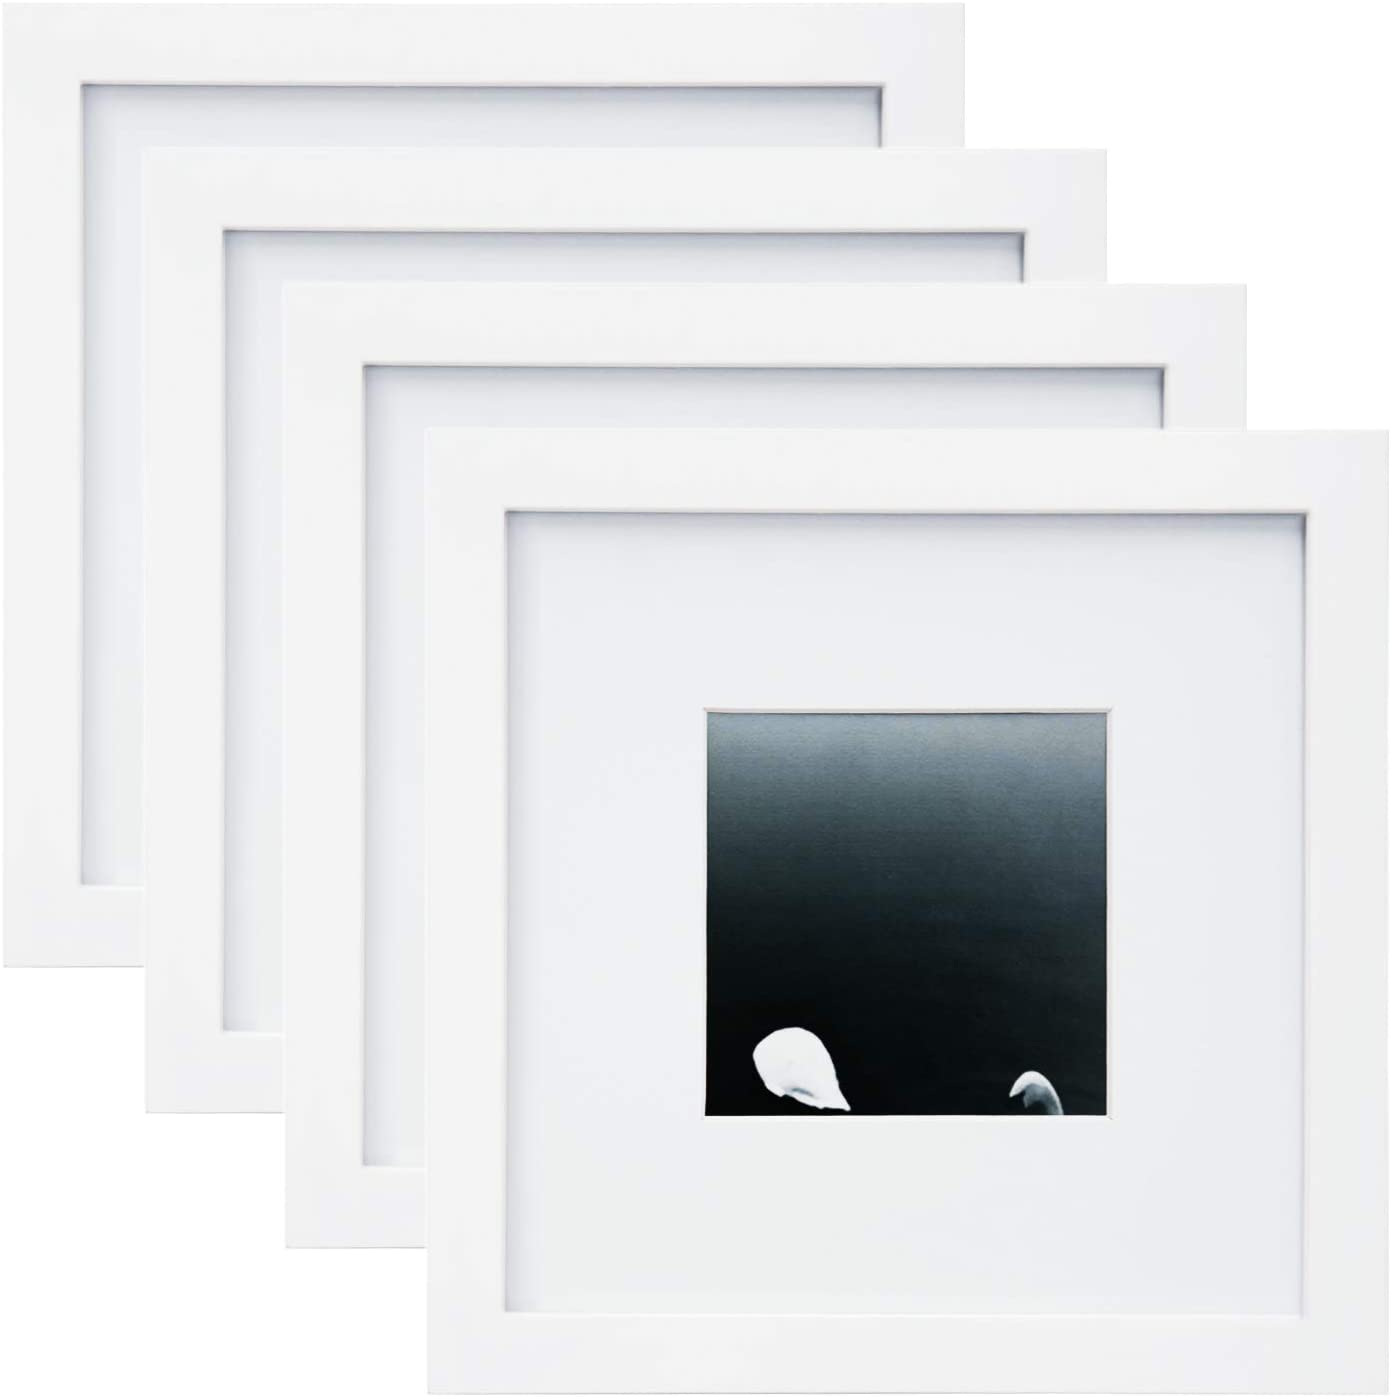 Egofine Elegant 8x8 Picture Frames 4 PCS - Recommendation for Solid of Wood Made Table